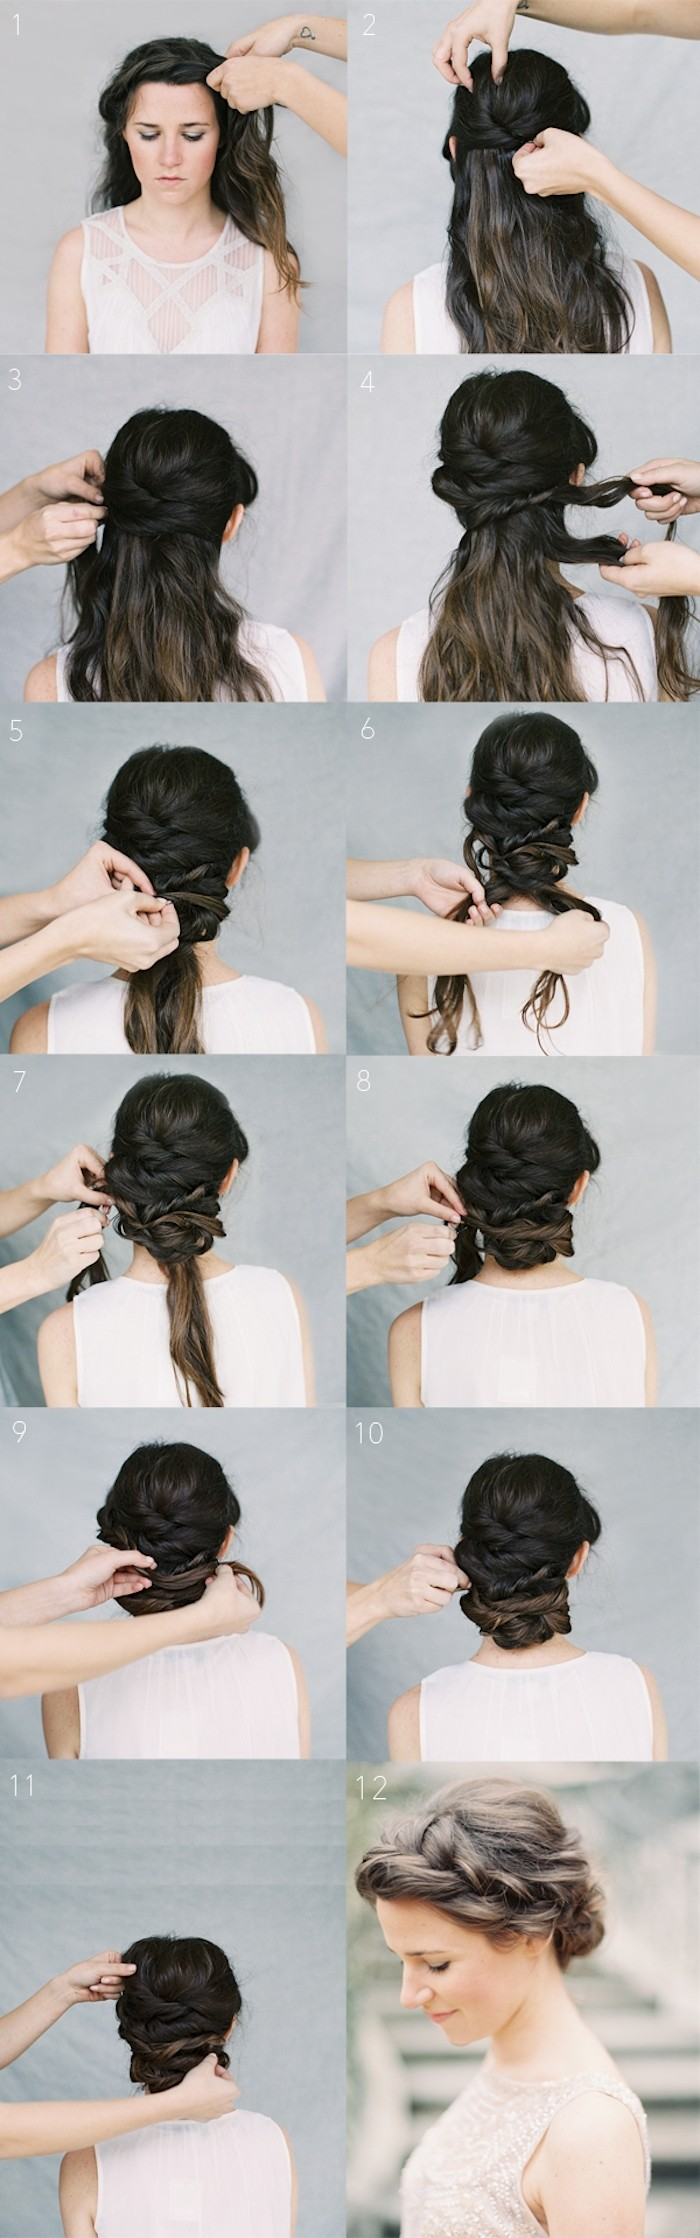 12 Hottest Wedding Hairstyles Tutorials for Brides and Bridesmaids ...